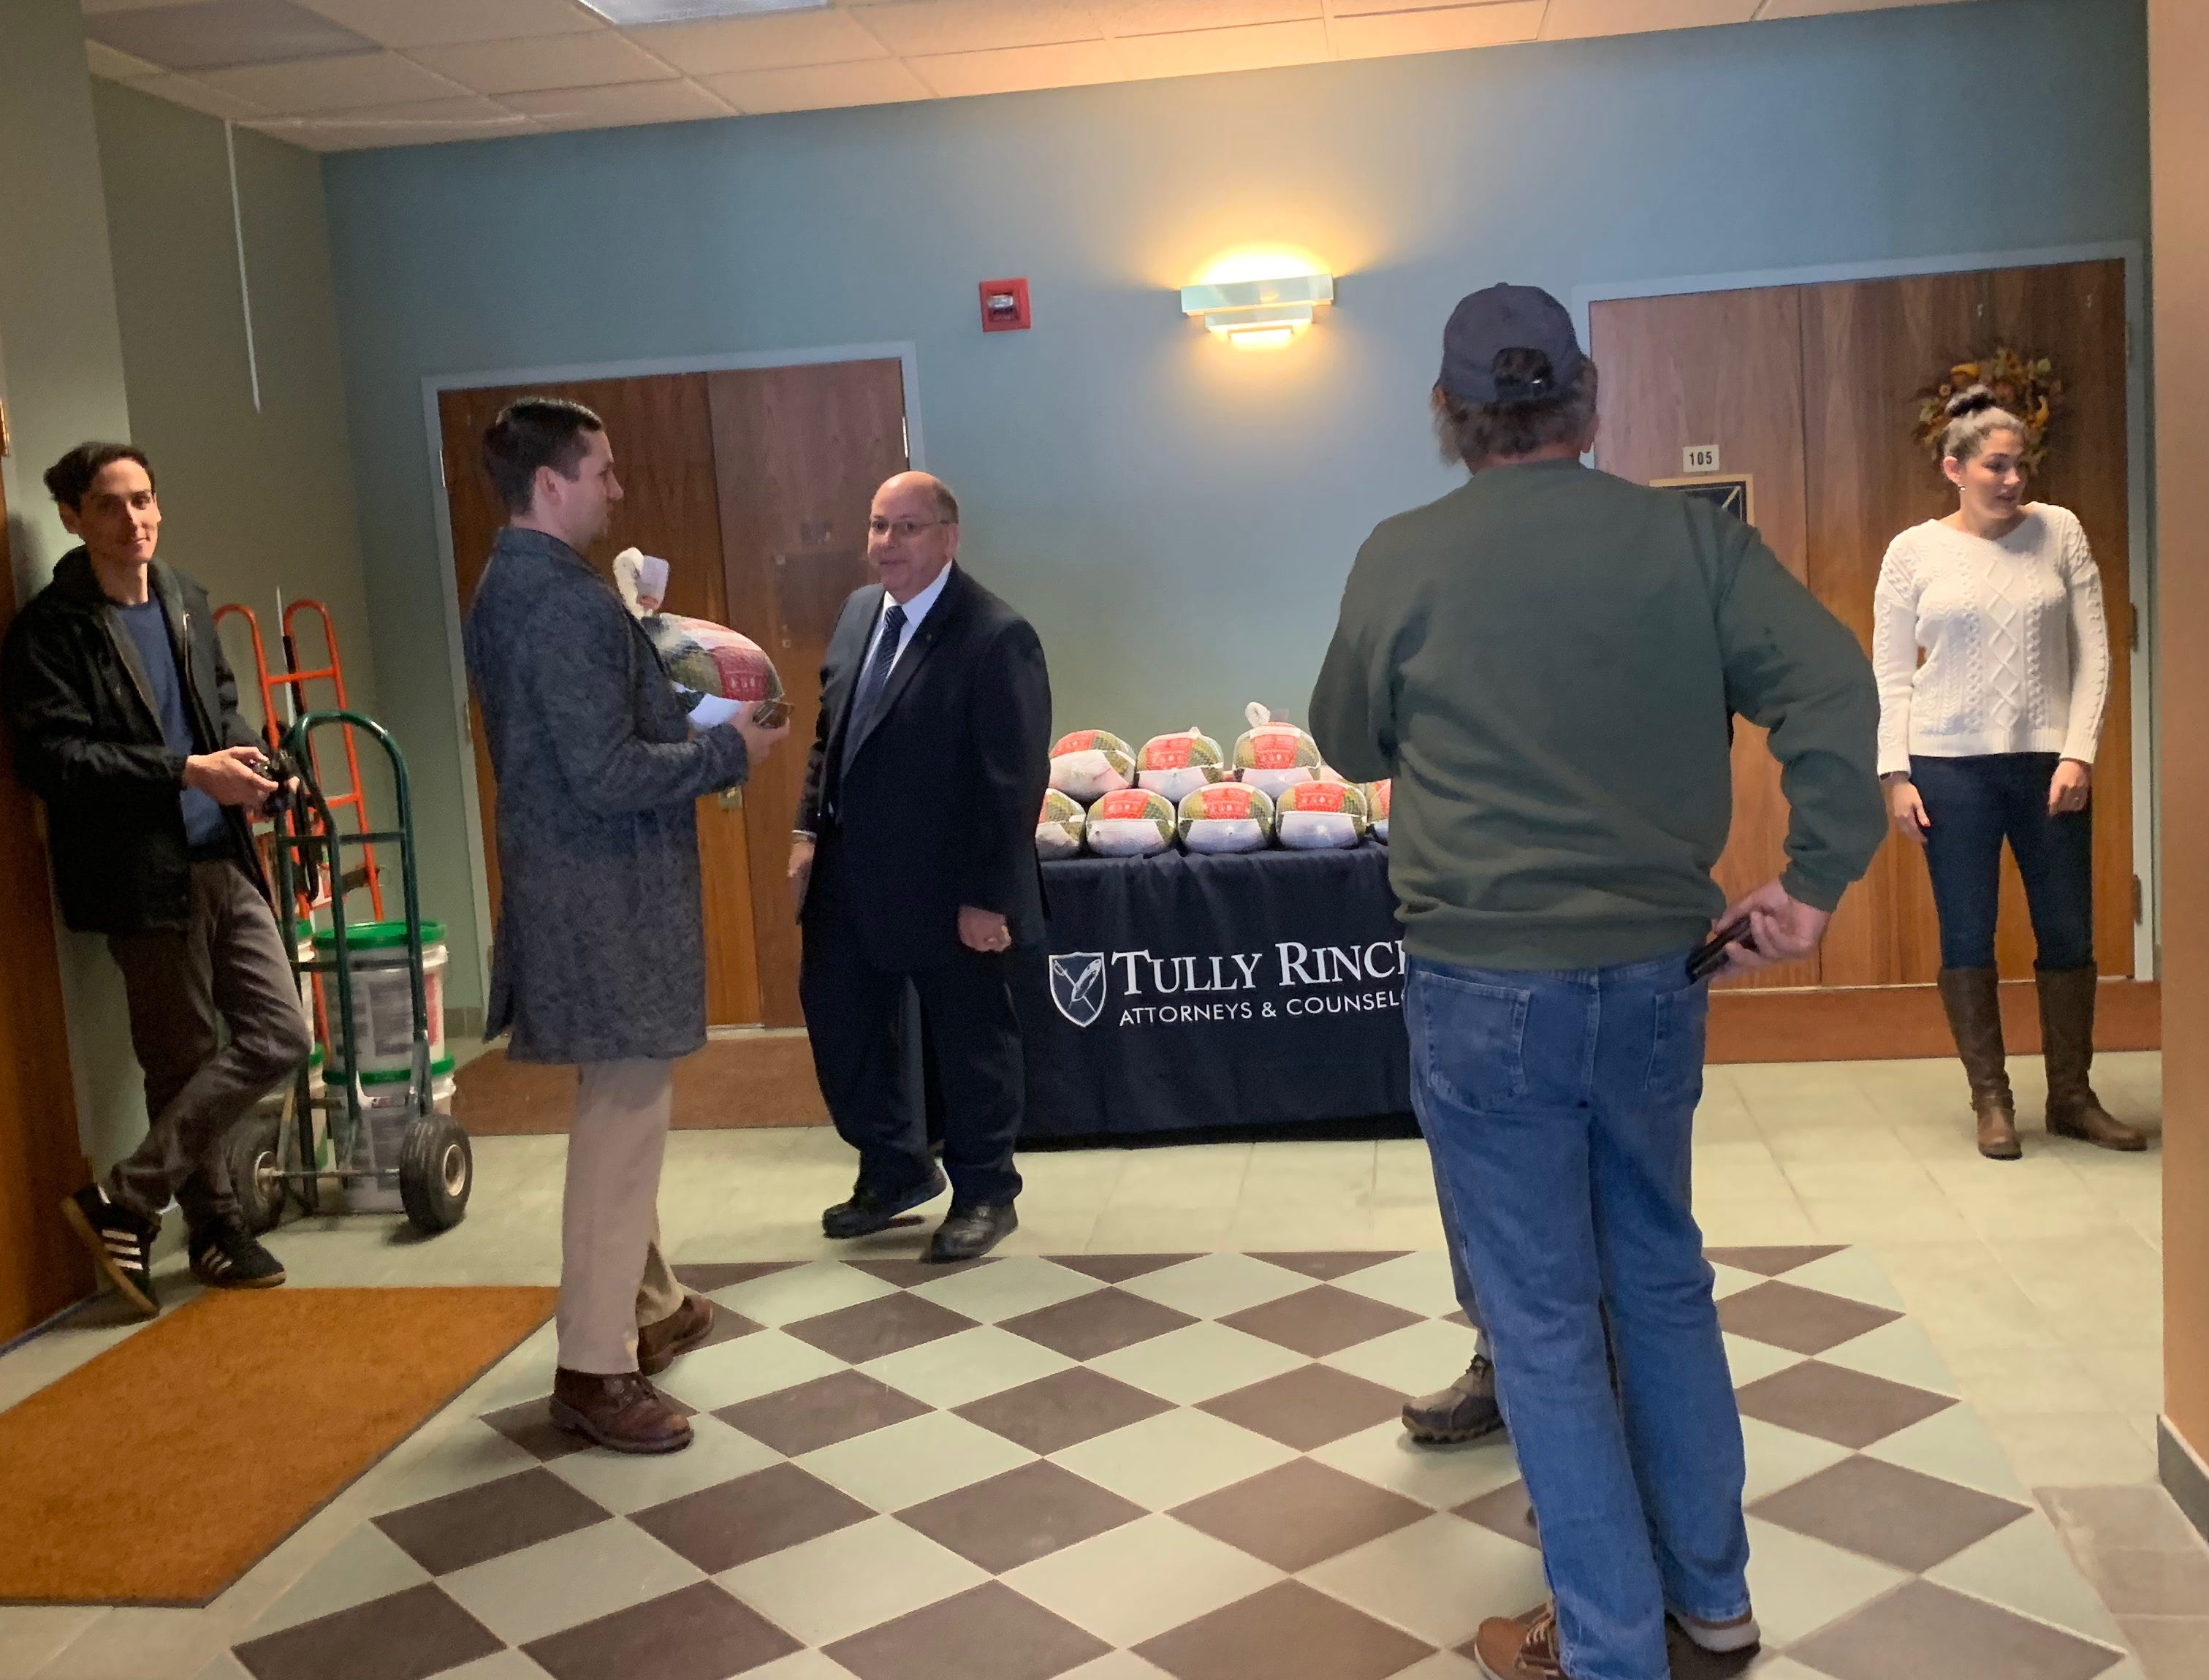 Tully Rinckey prepares to hand out turkeys to veterans at its Binghamton firm on Vestal Road Monday.